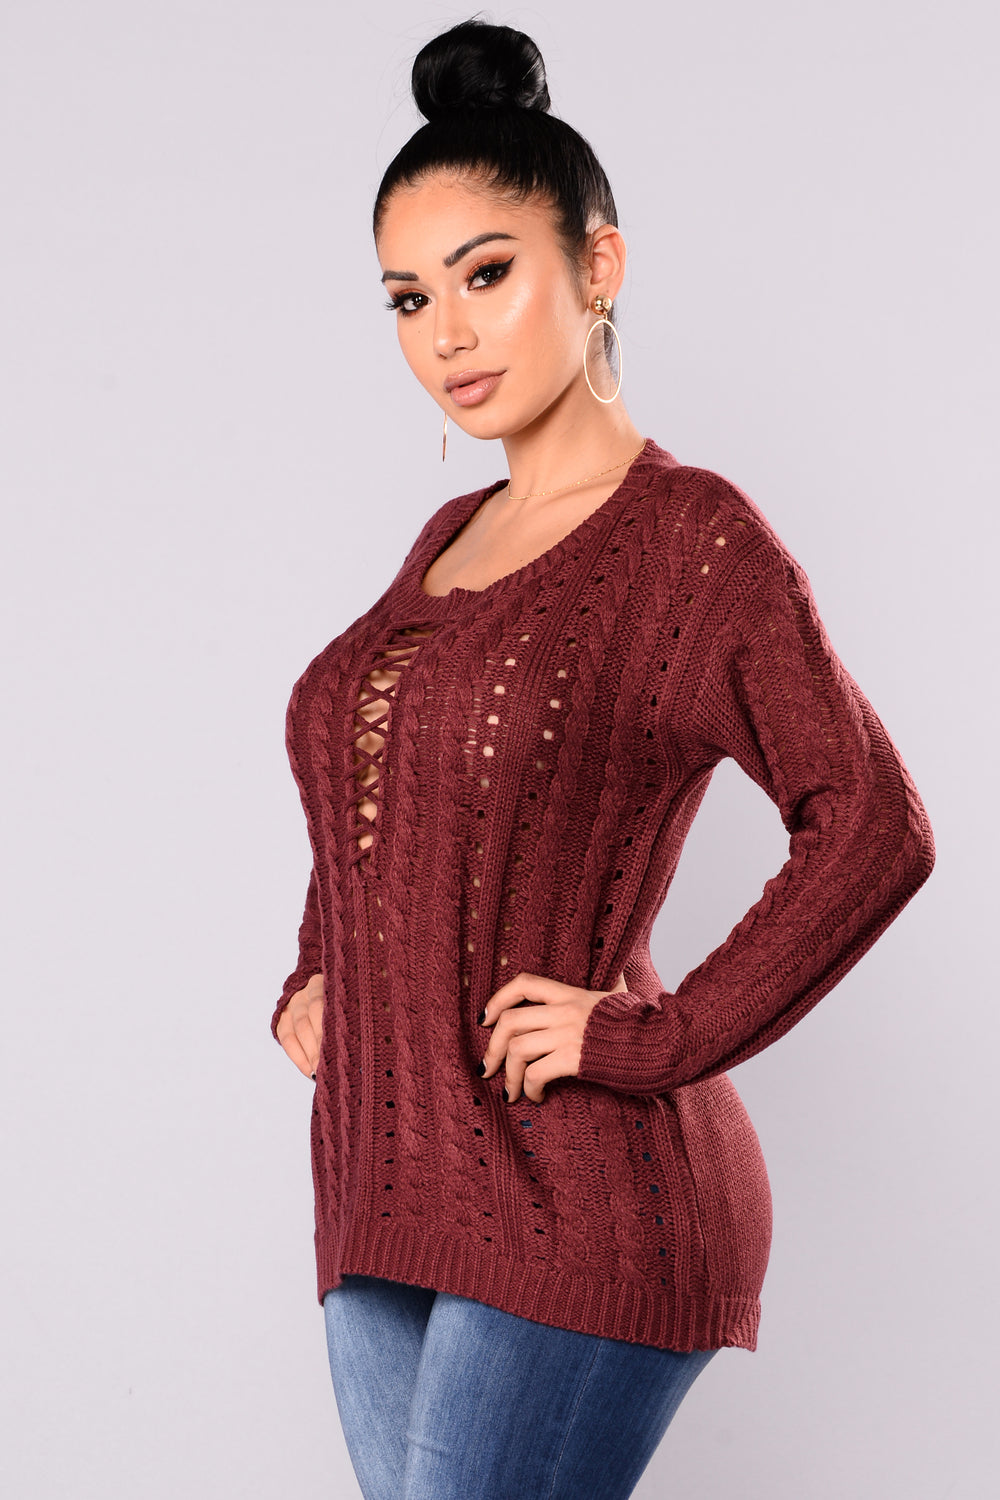 Estella Lace Up Sweater - Burgundy